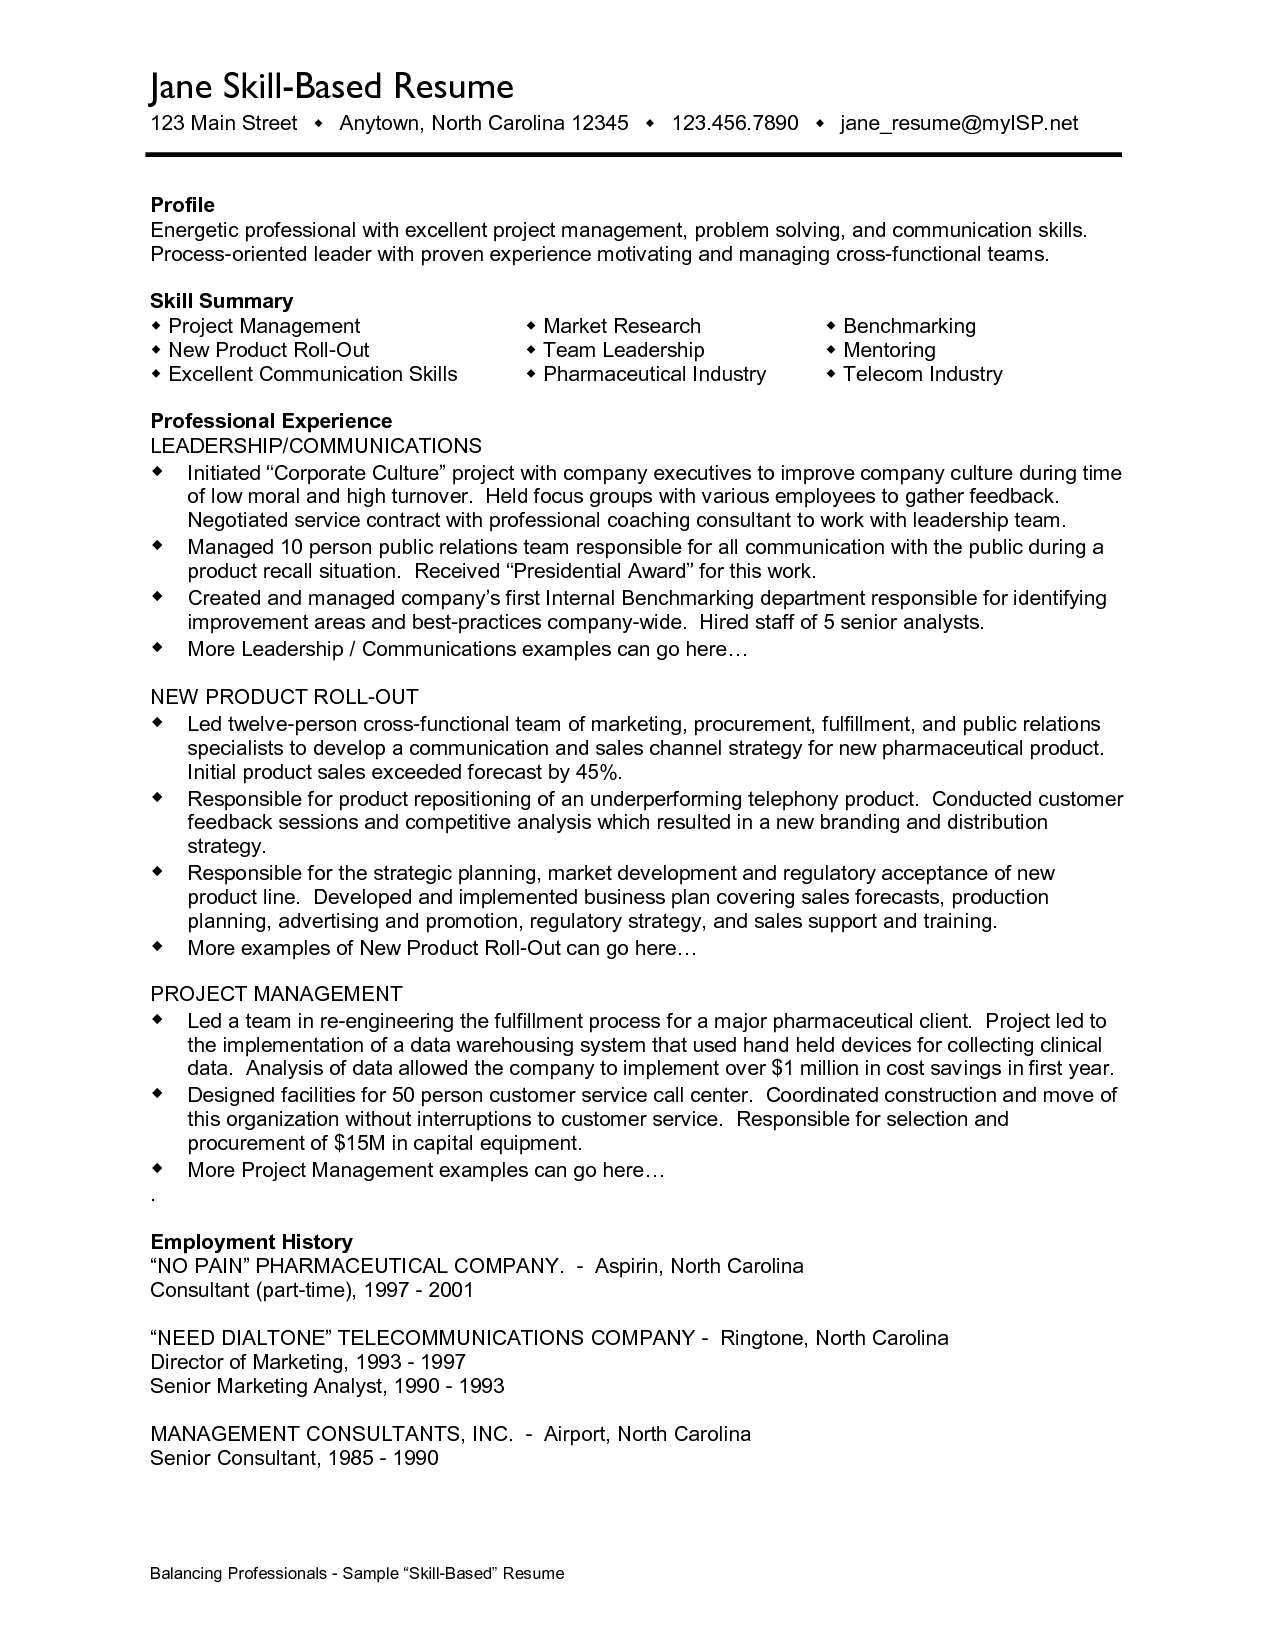 Job Resume Communication Skills resumecareerinfojob – Job Qualifications Examples for Resume